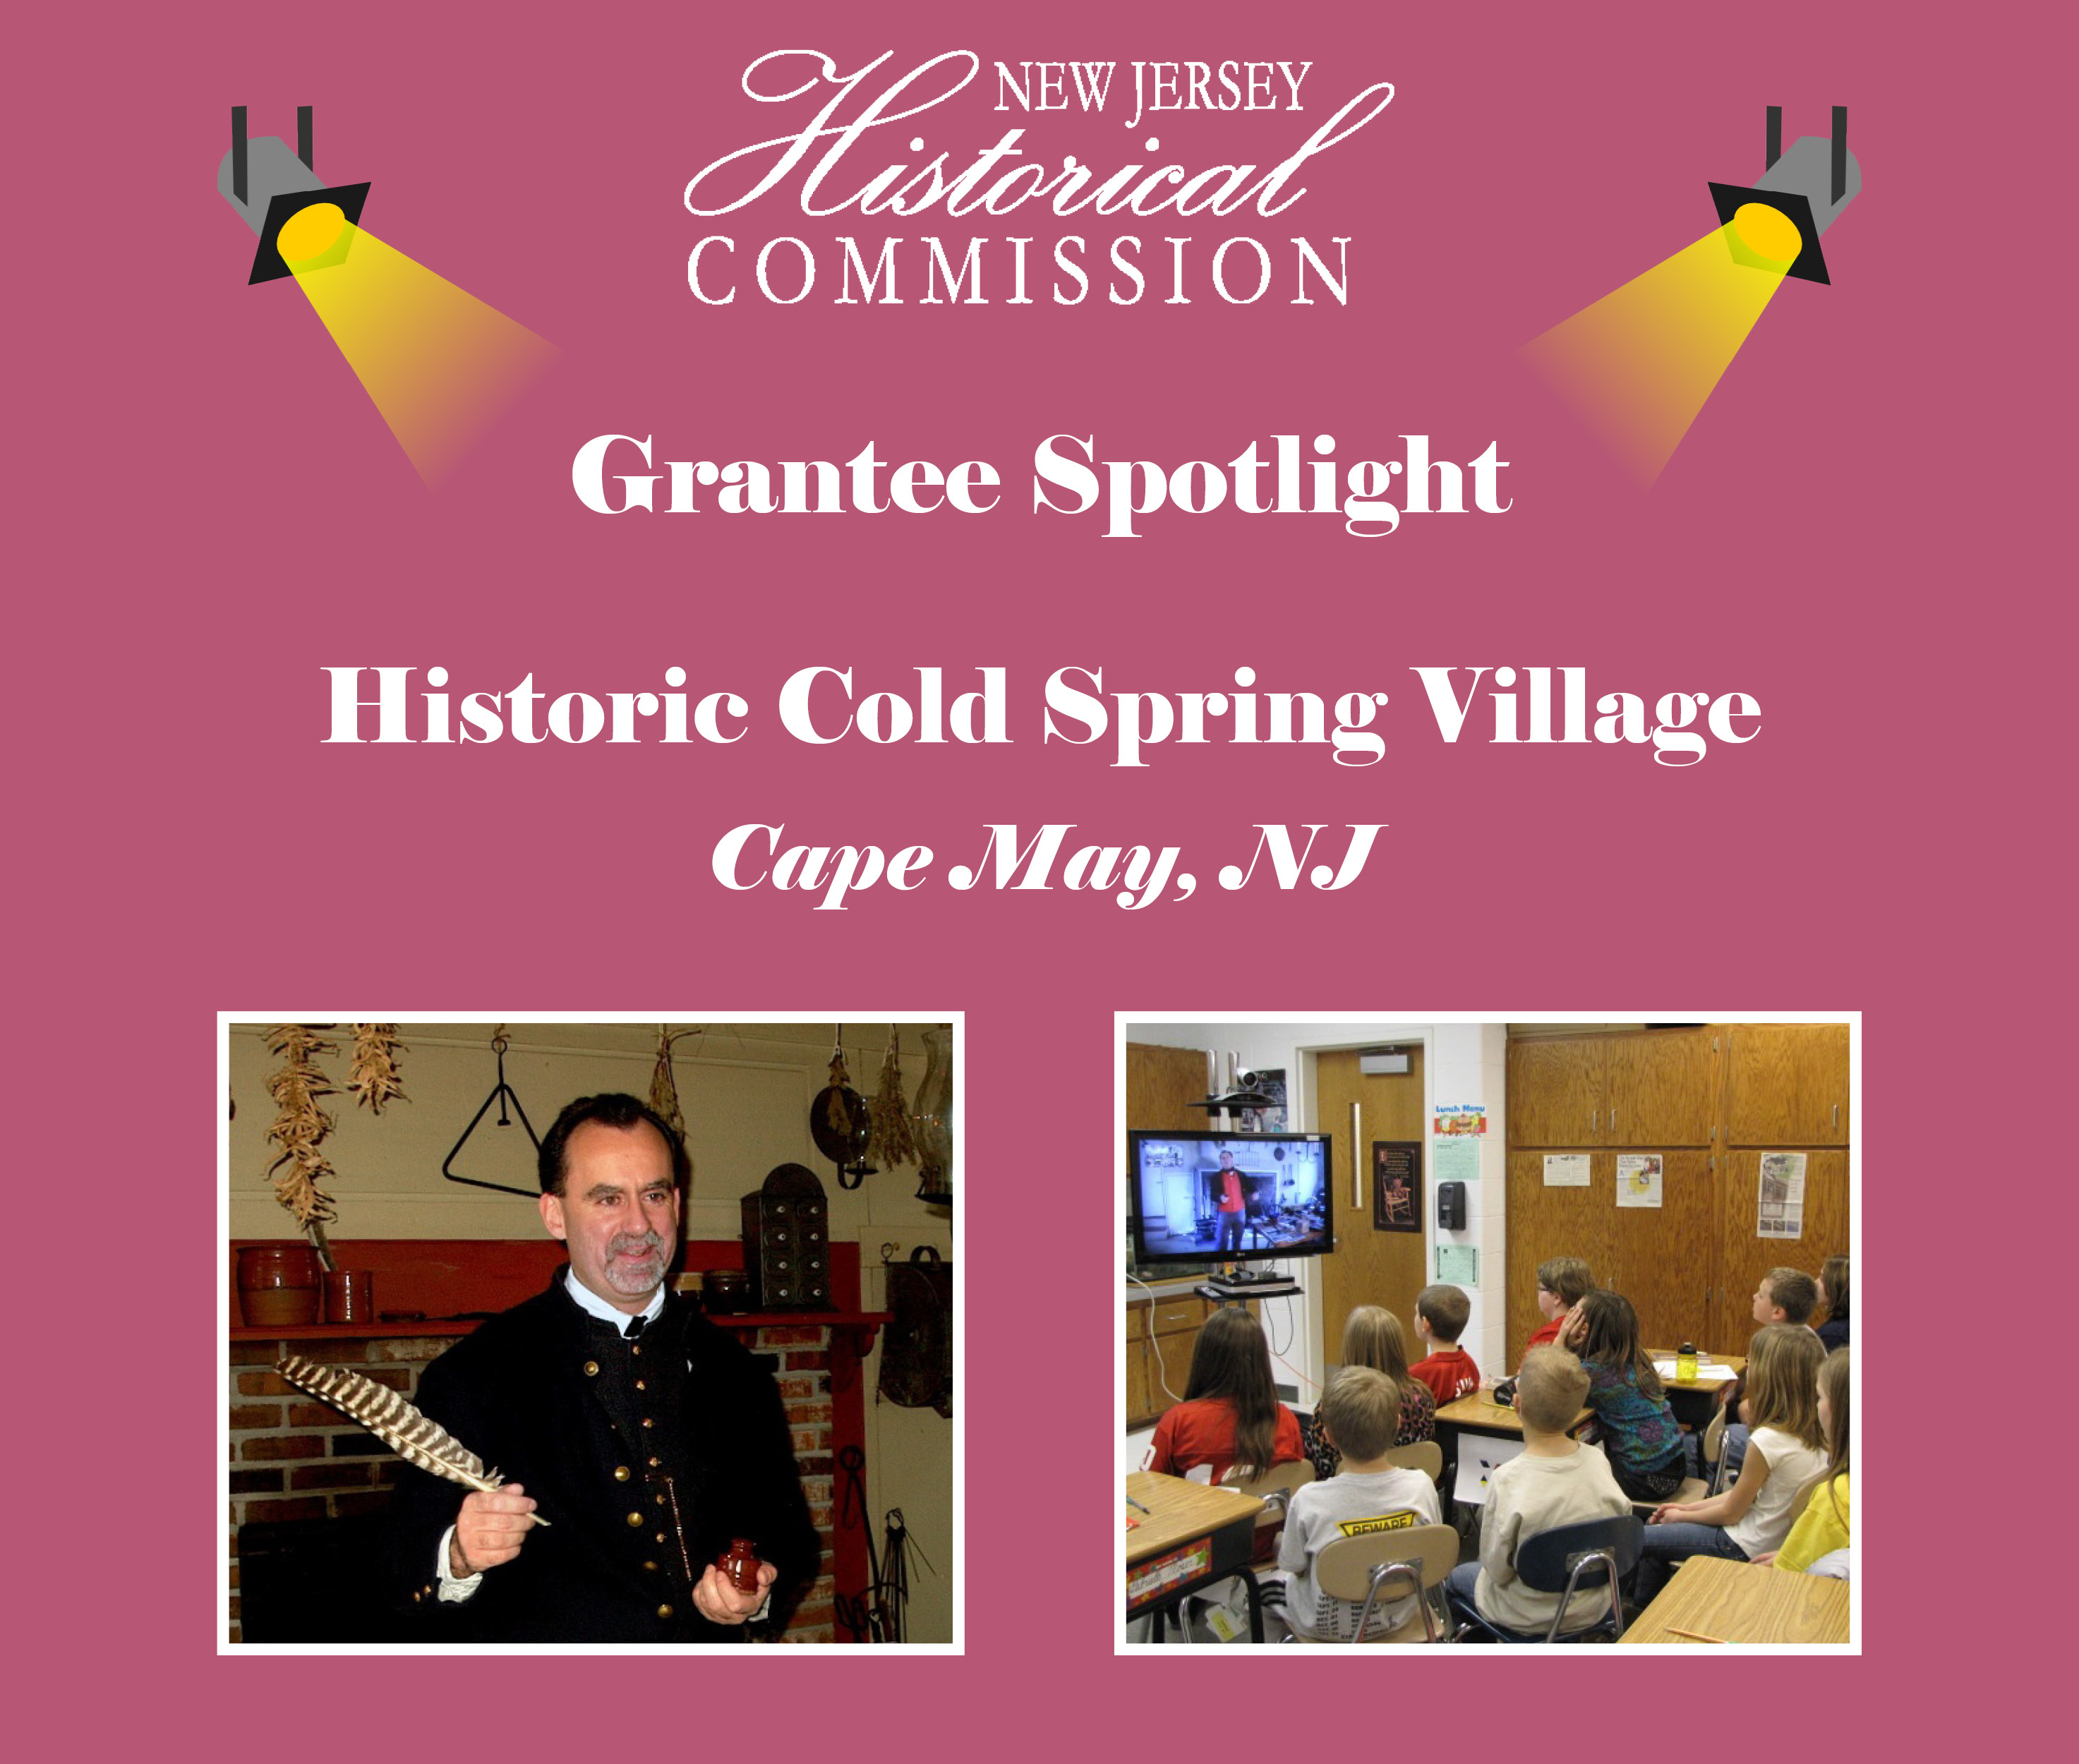 New Jersey Historical Commission (NJHC) Grantee Spotlight: Historic Cold Spring Village